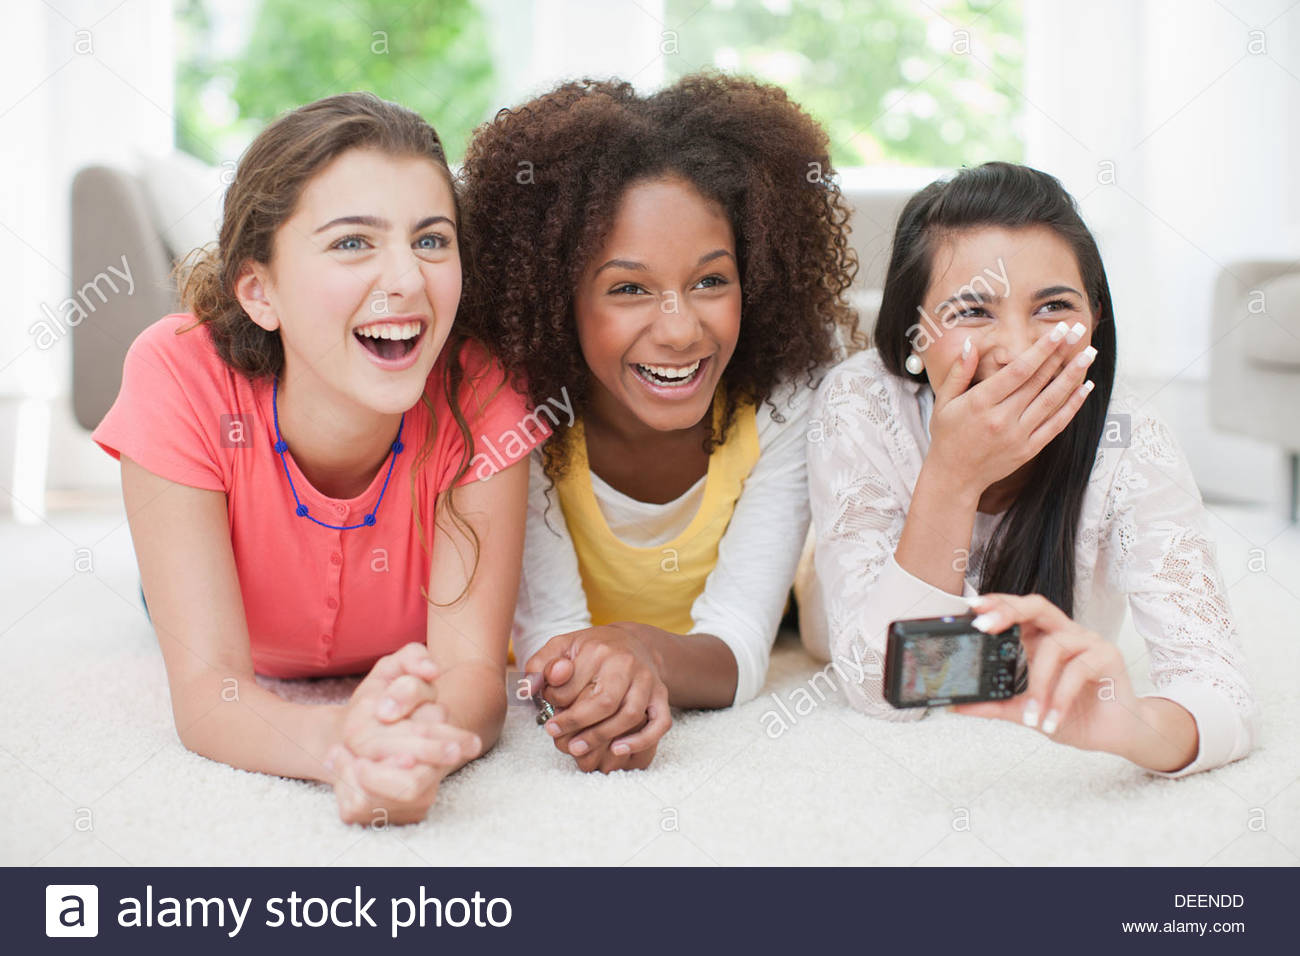 Teenage girls taking self-portrait - Stock Image